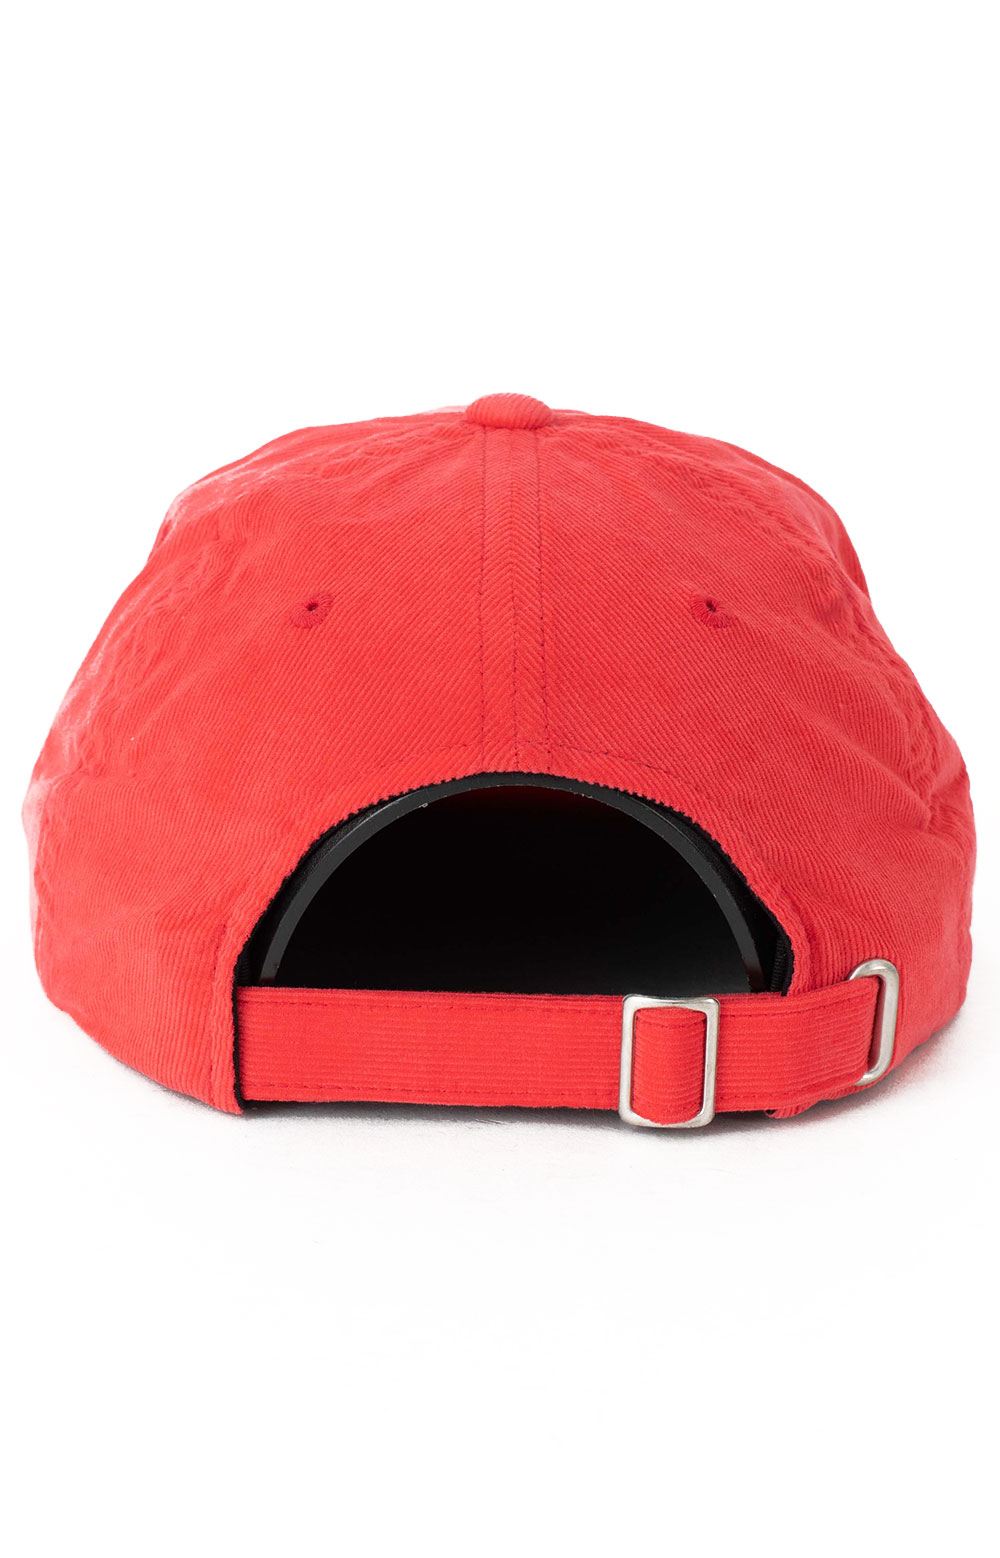 Dawg Polo Cap - Red 3